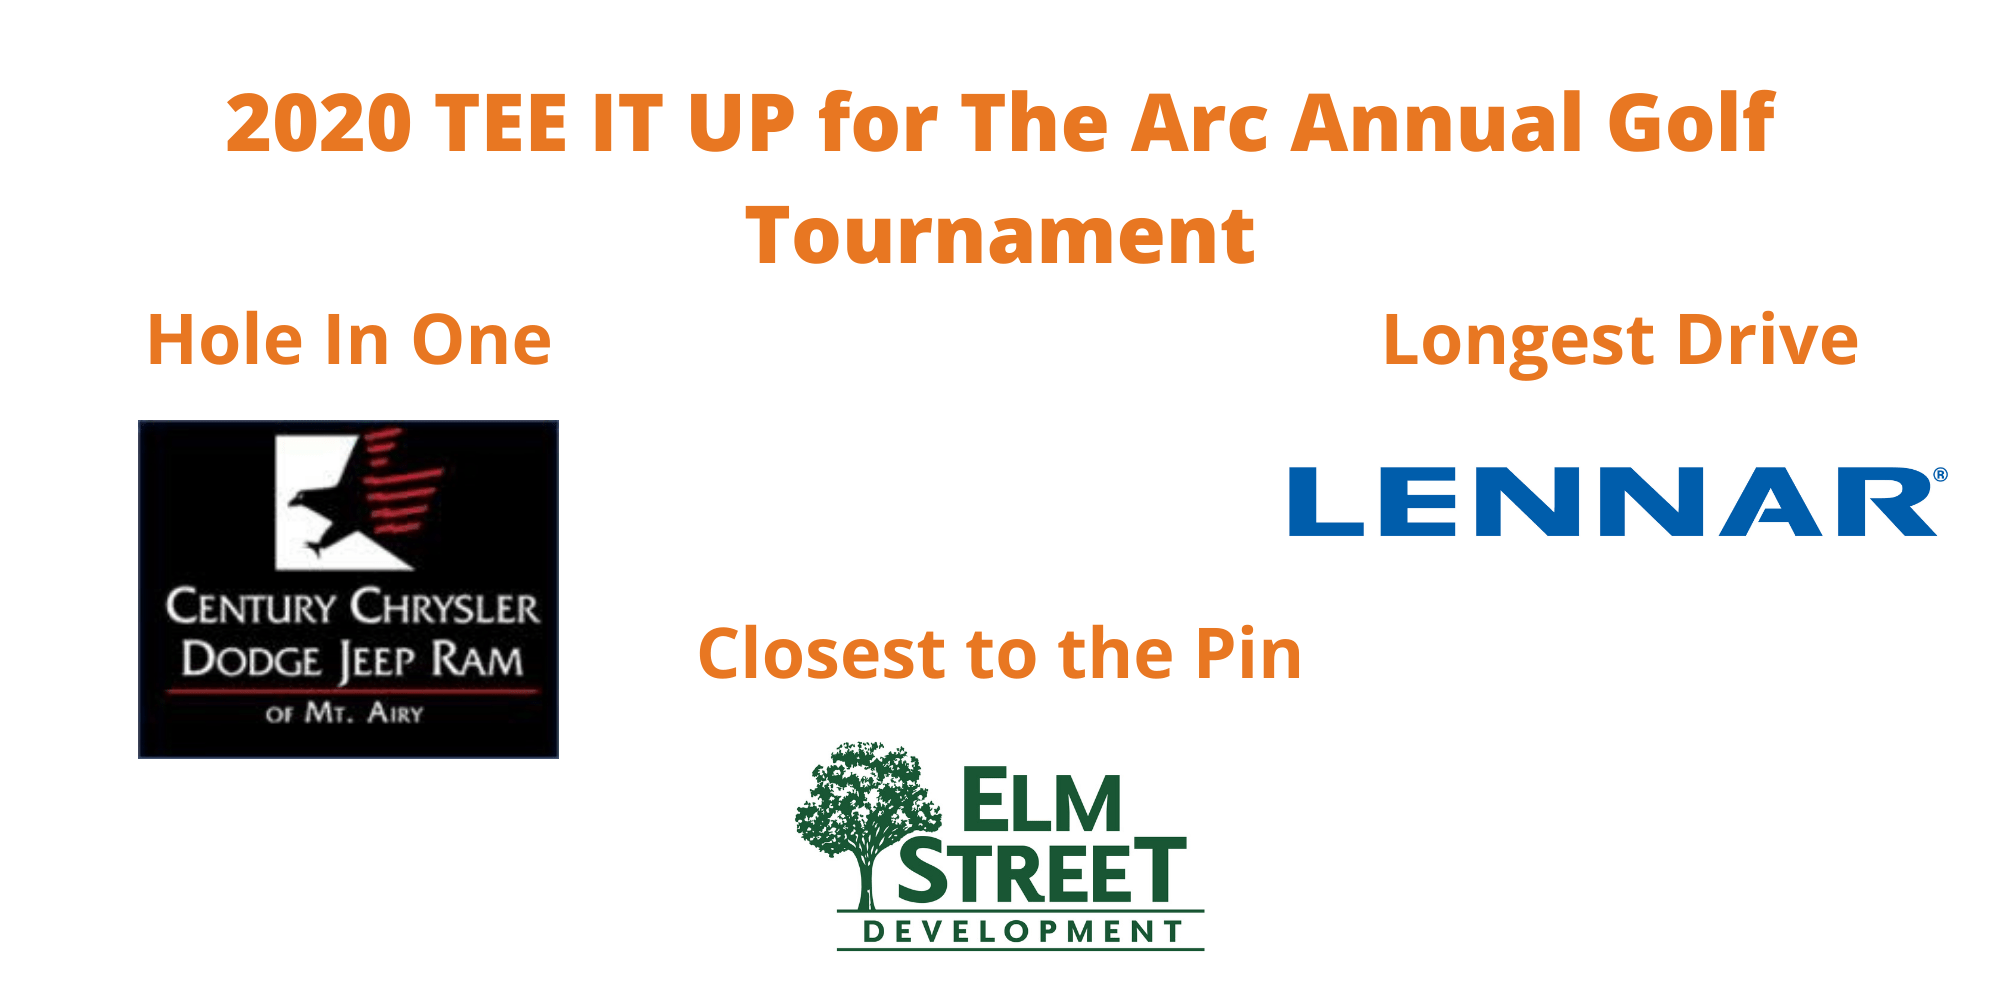 Century Chrysler Dodge Jeep Ram is the Hole In One Sponsor, Elm Street Development is the Closest to the Pin Sponsor, and Lennar is the Longest Drive Sponsor